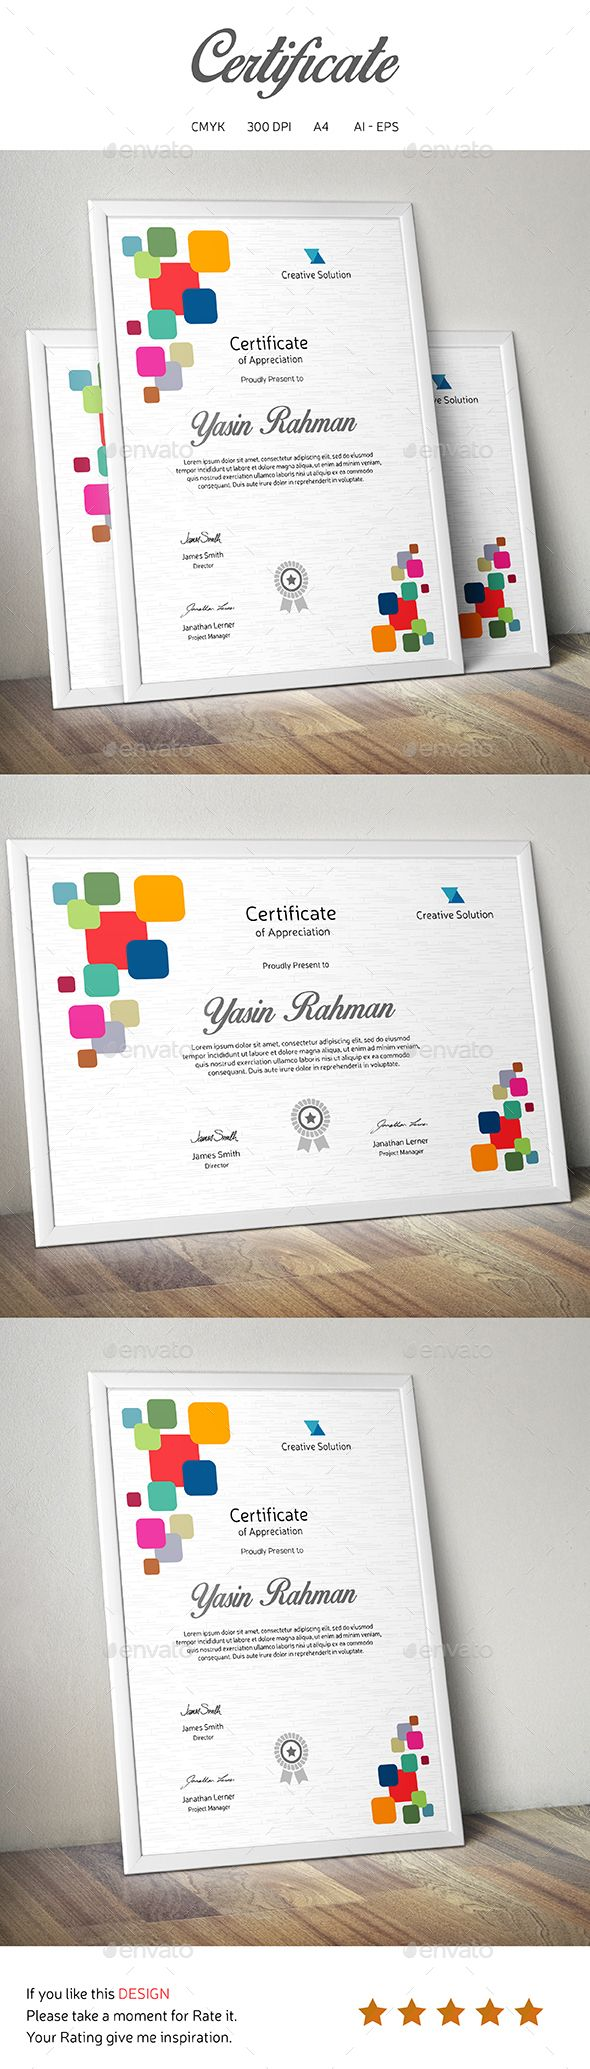 Certificate Template Vector EPS, AI. Download here: http://graphicriver.net/item/certificate/14047642?ref=ksioks